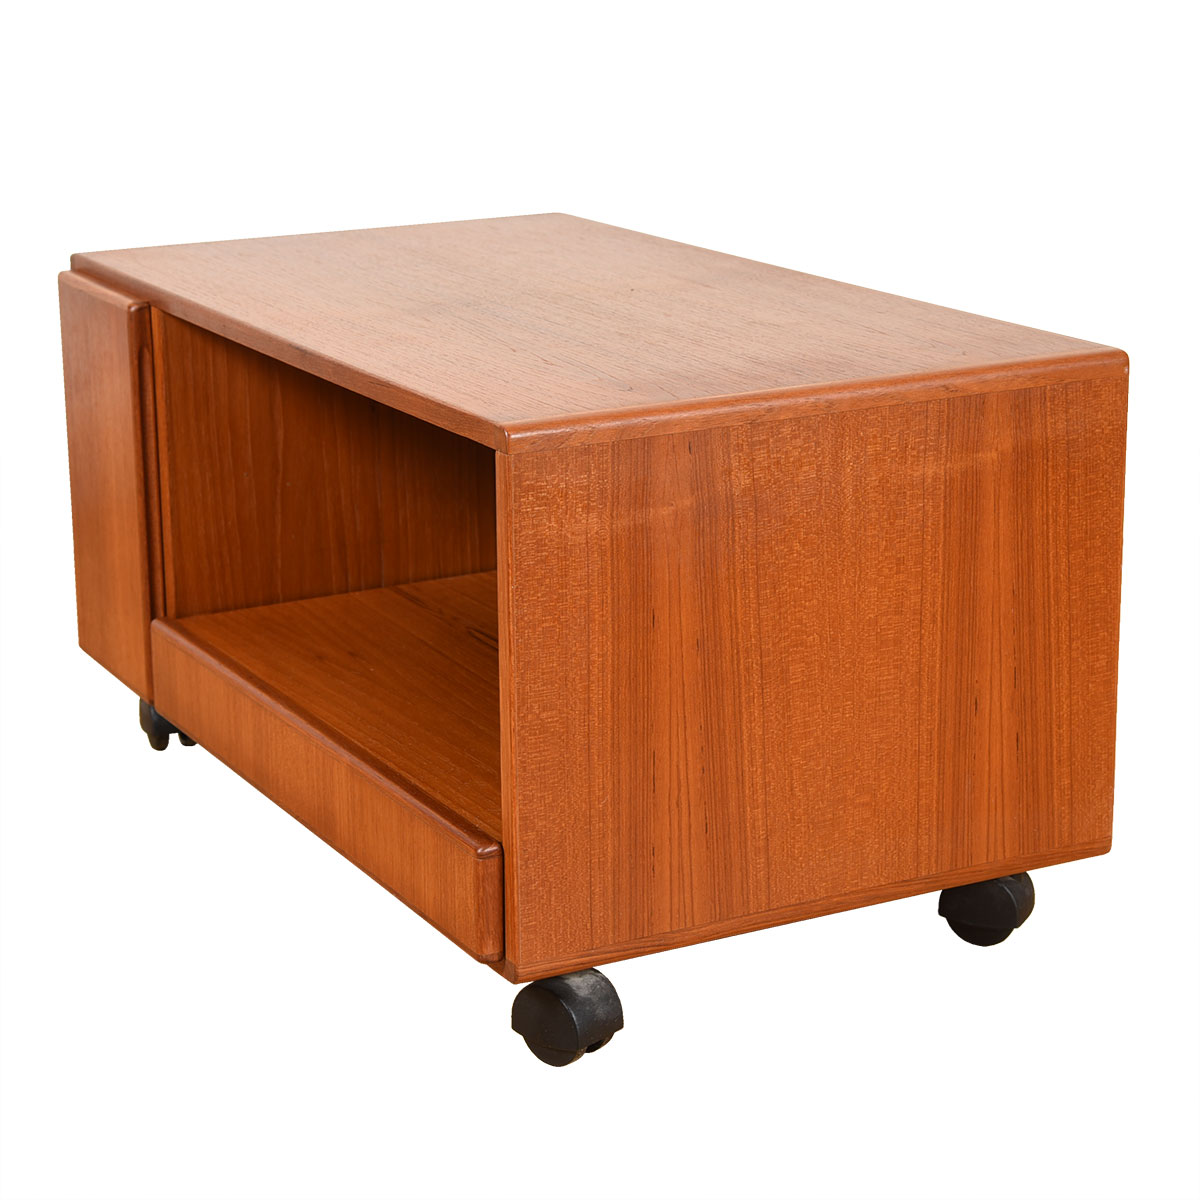 Danish Teak Rolling TV Stand / Low Media Cabinet.